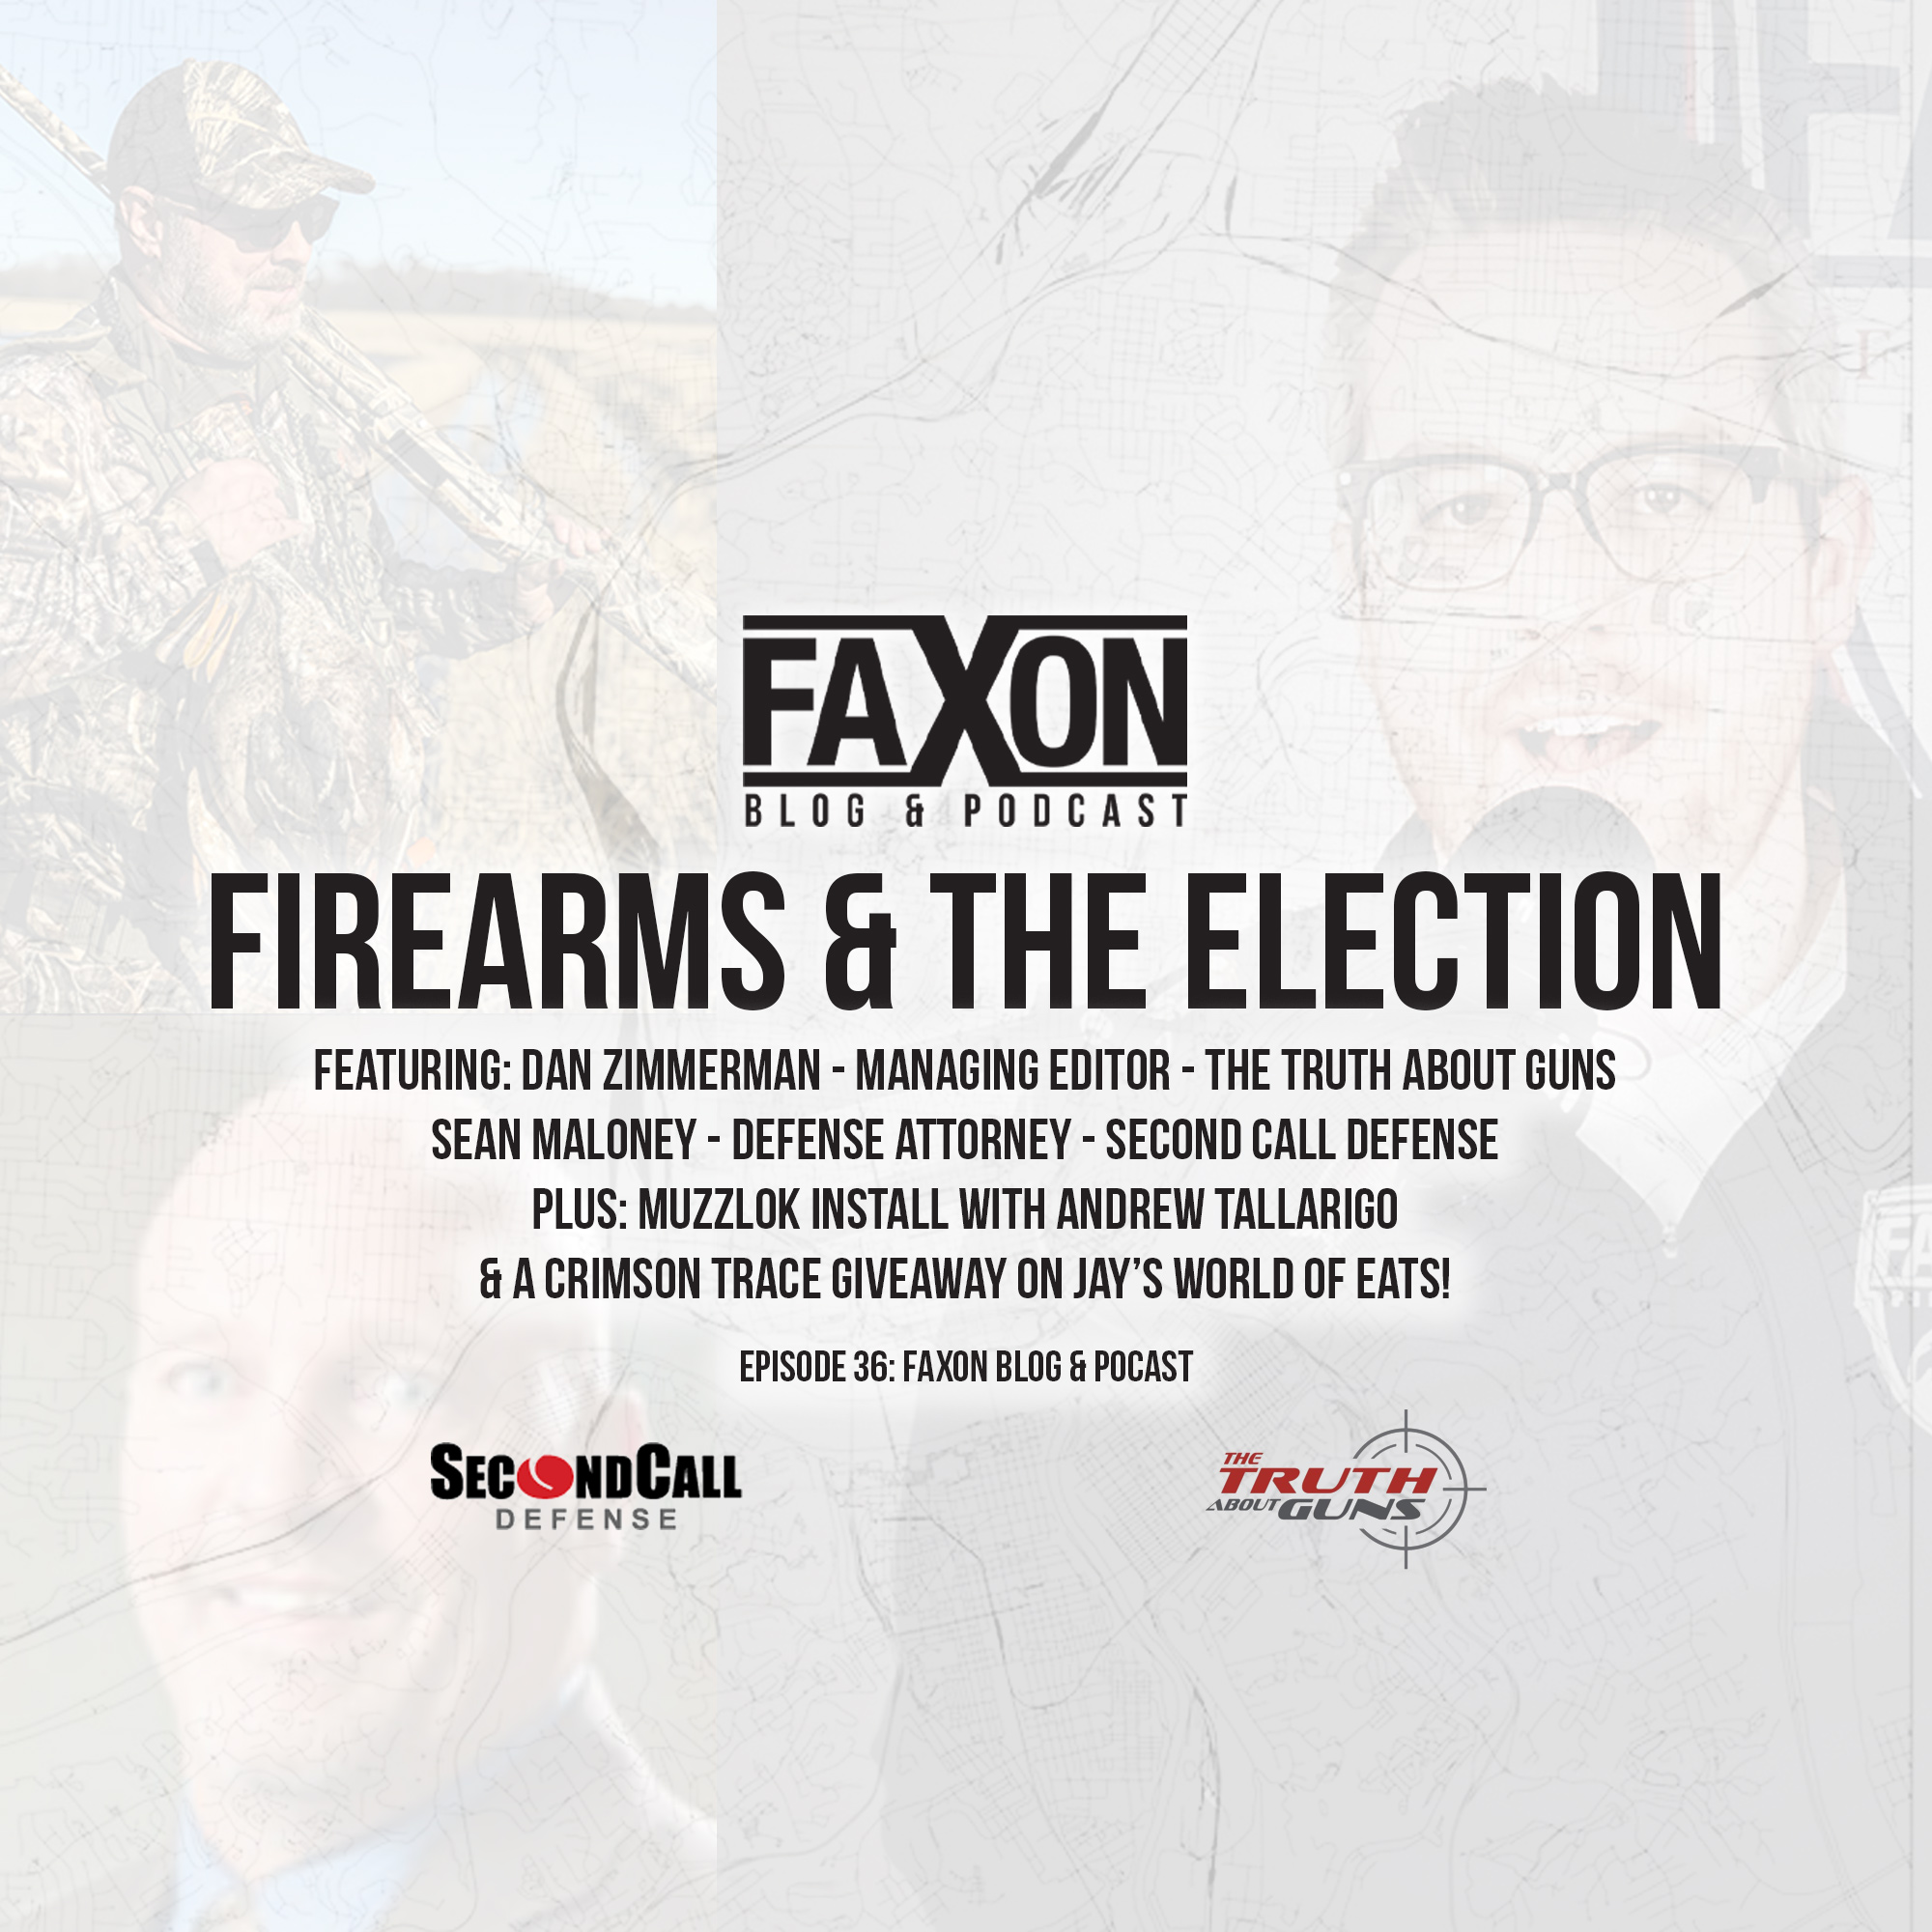 Firearms & The Election | Episode 36: Faxon Blog & Podcast